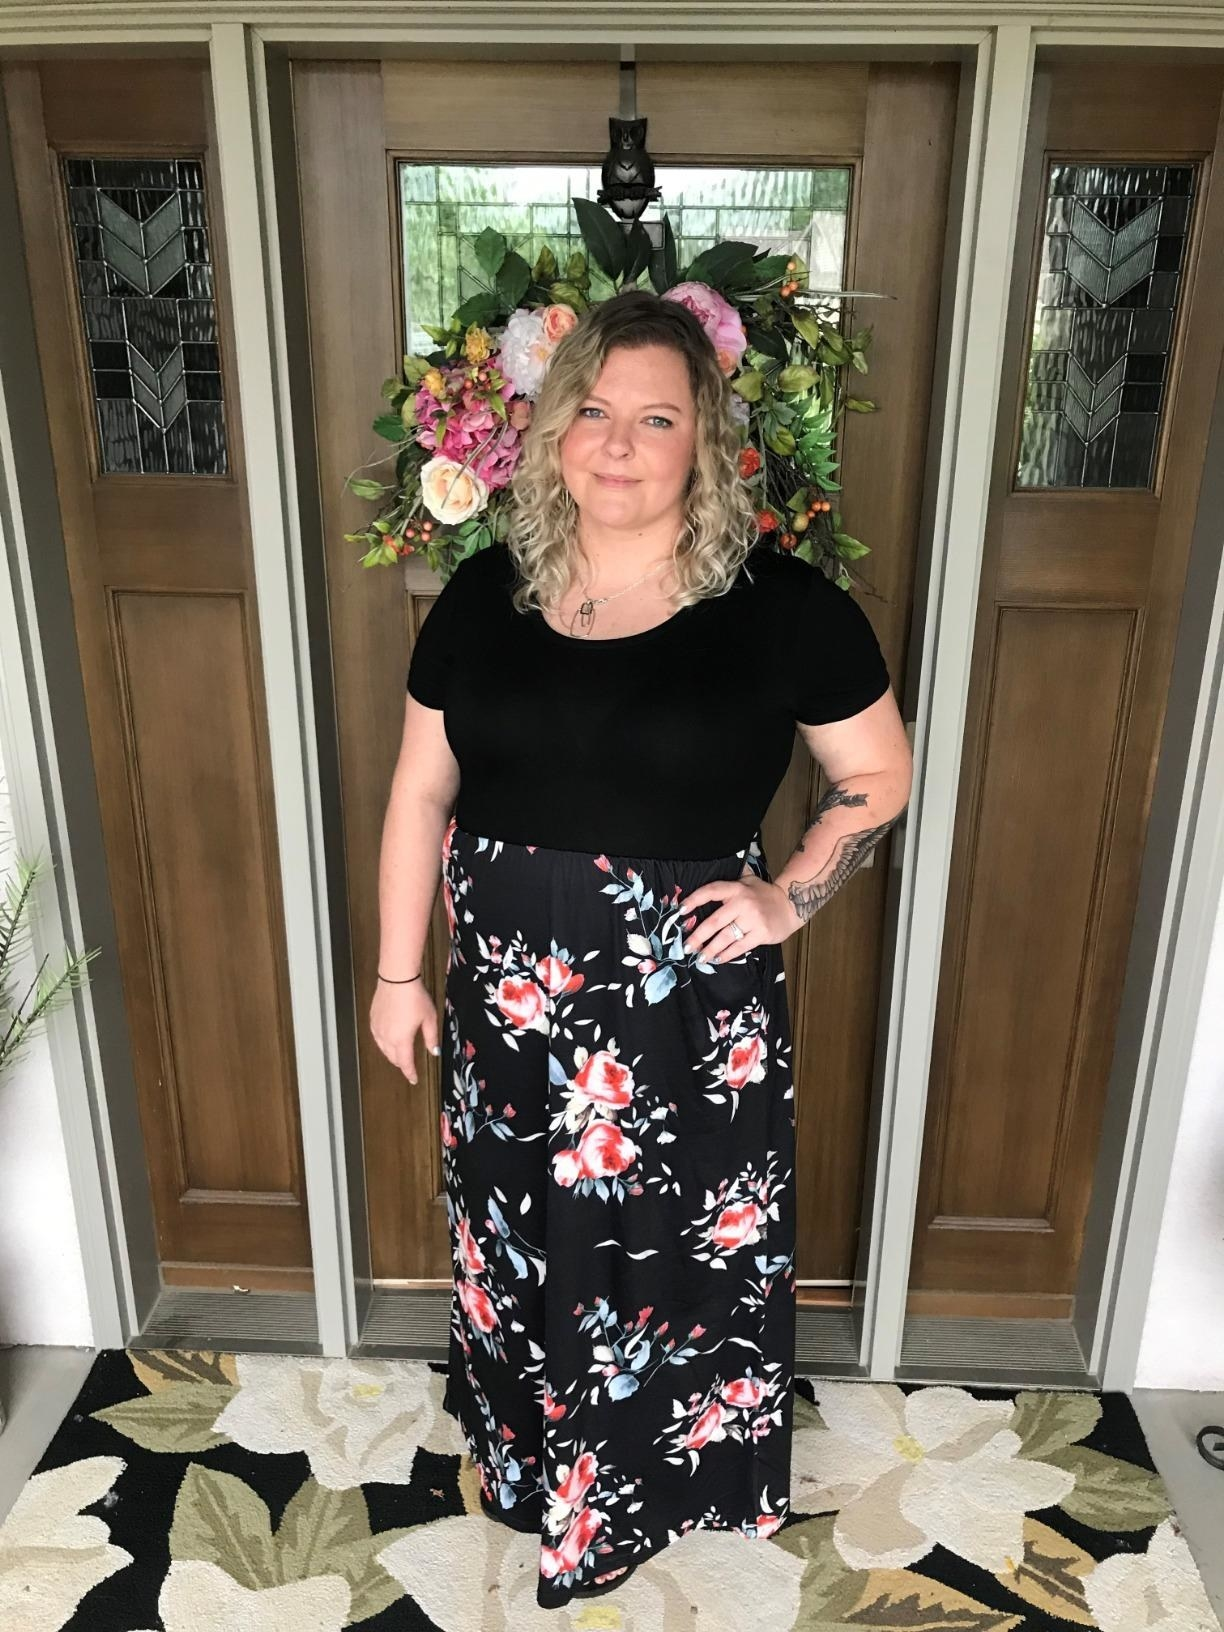 Reviewer wearing black dress with light red floral pattern, stops past the ankle